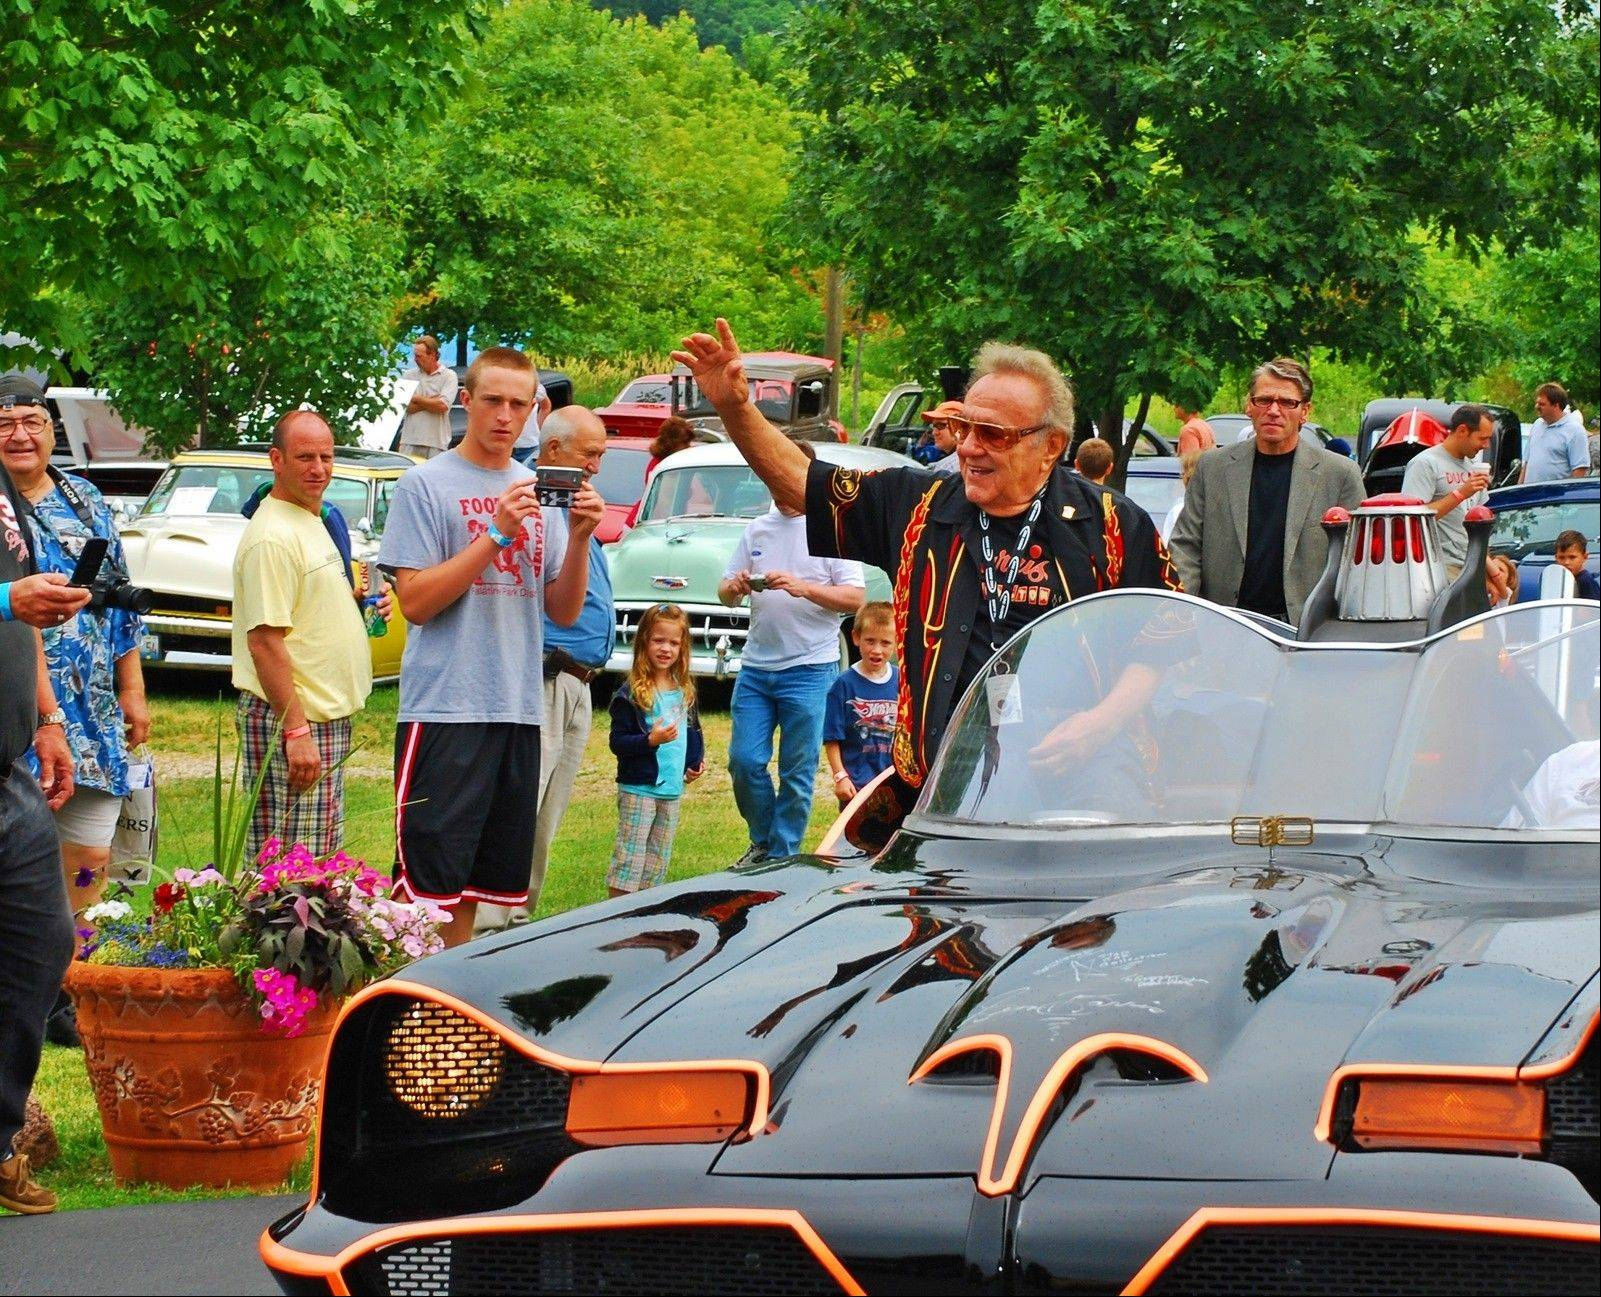 Auto designer George Barris headlines the George Barris Charity Car Show and Festival at the Volo Auto Museum Sunday.